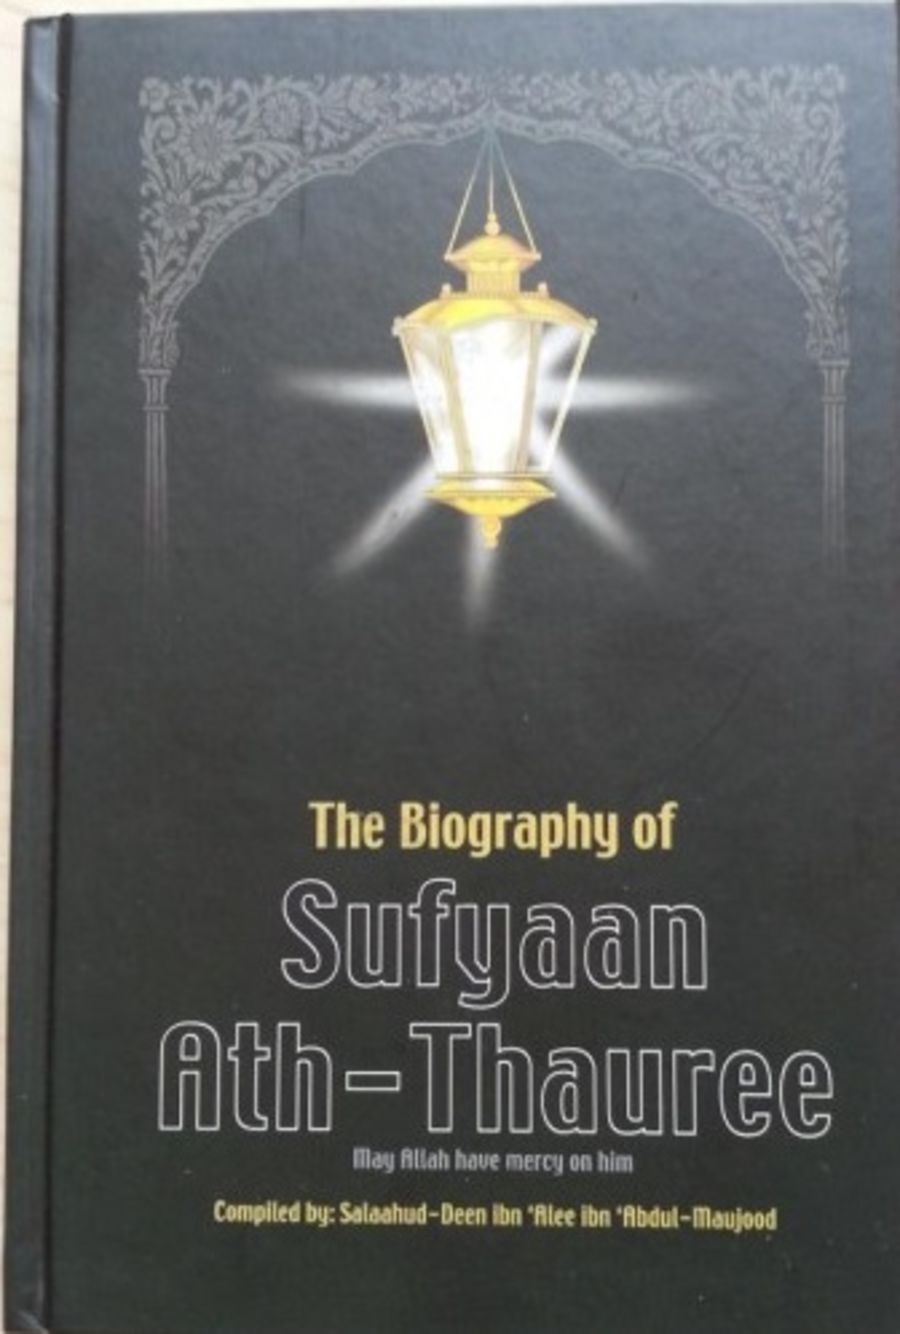 The Biography of Sufyaan ath-Thauree by Salaahud-Deen ibn Alee